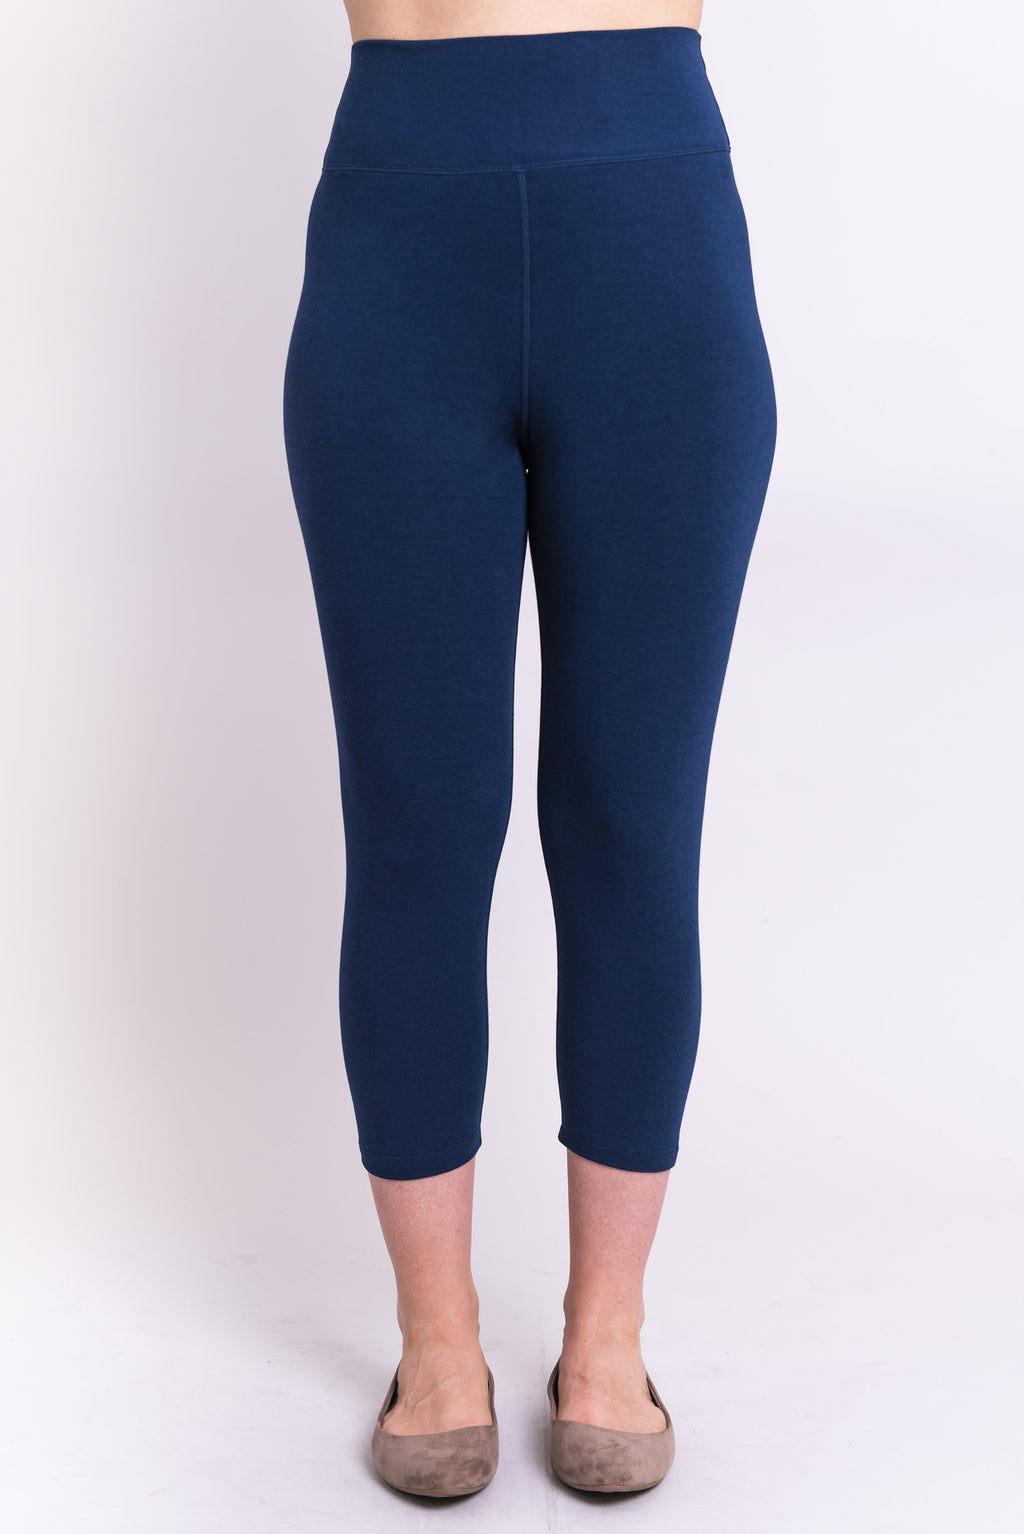 Riley Capri, Indigo, Bamboo - Blue Sky Clothing Co